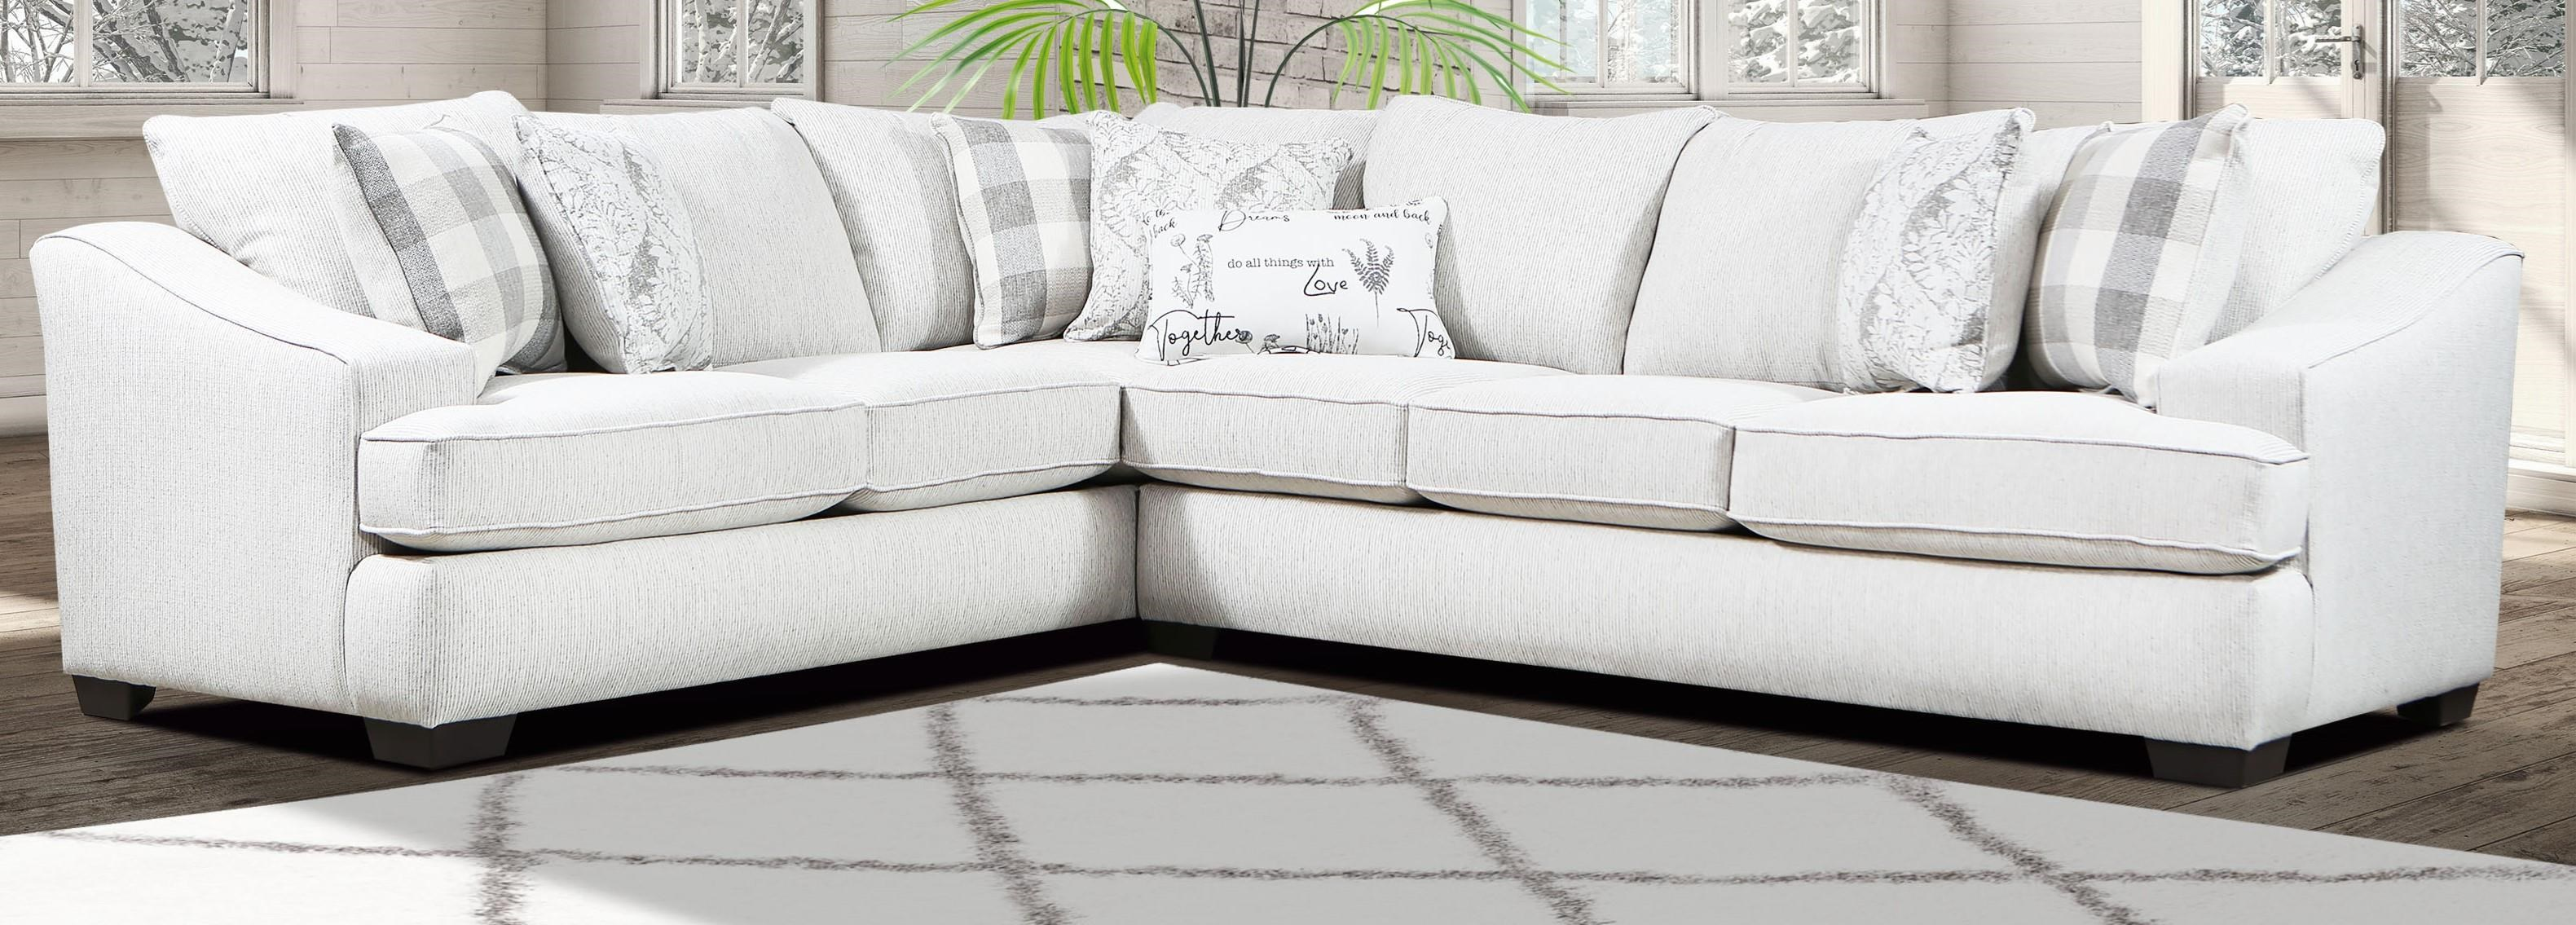 9995 Two Piece Sectional by Magnolia Upholstery Design at Furniture Fair - North Carolina